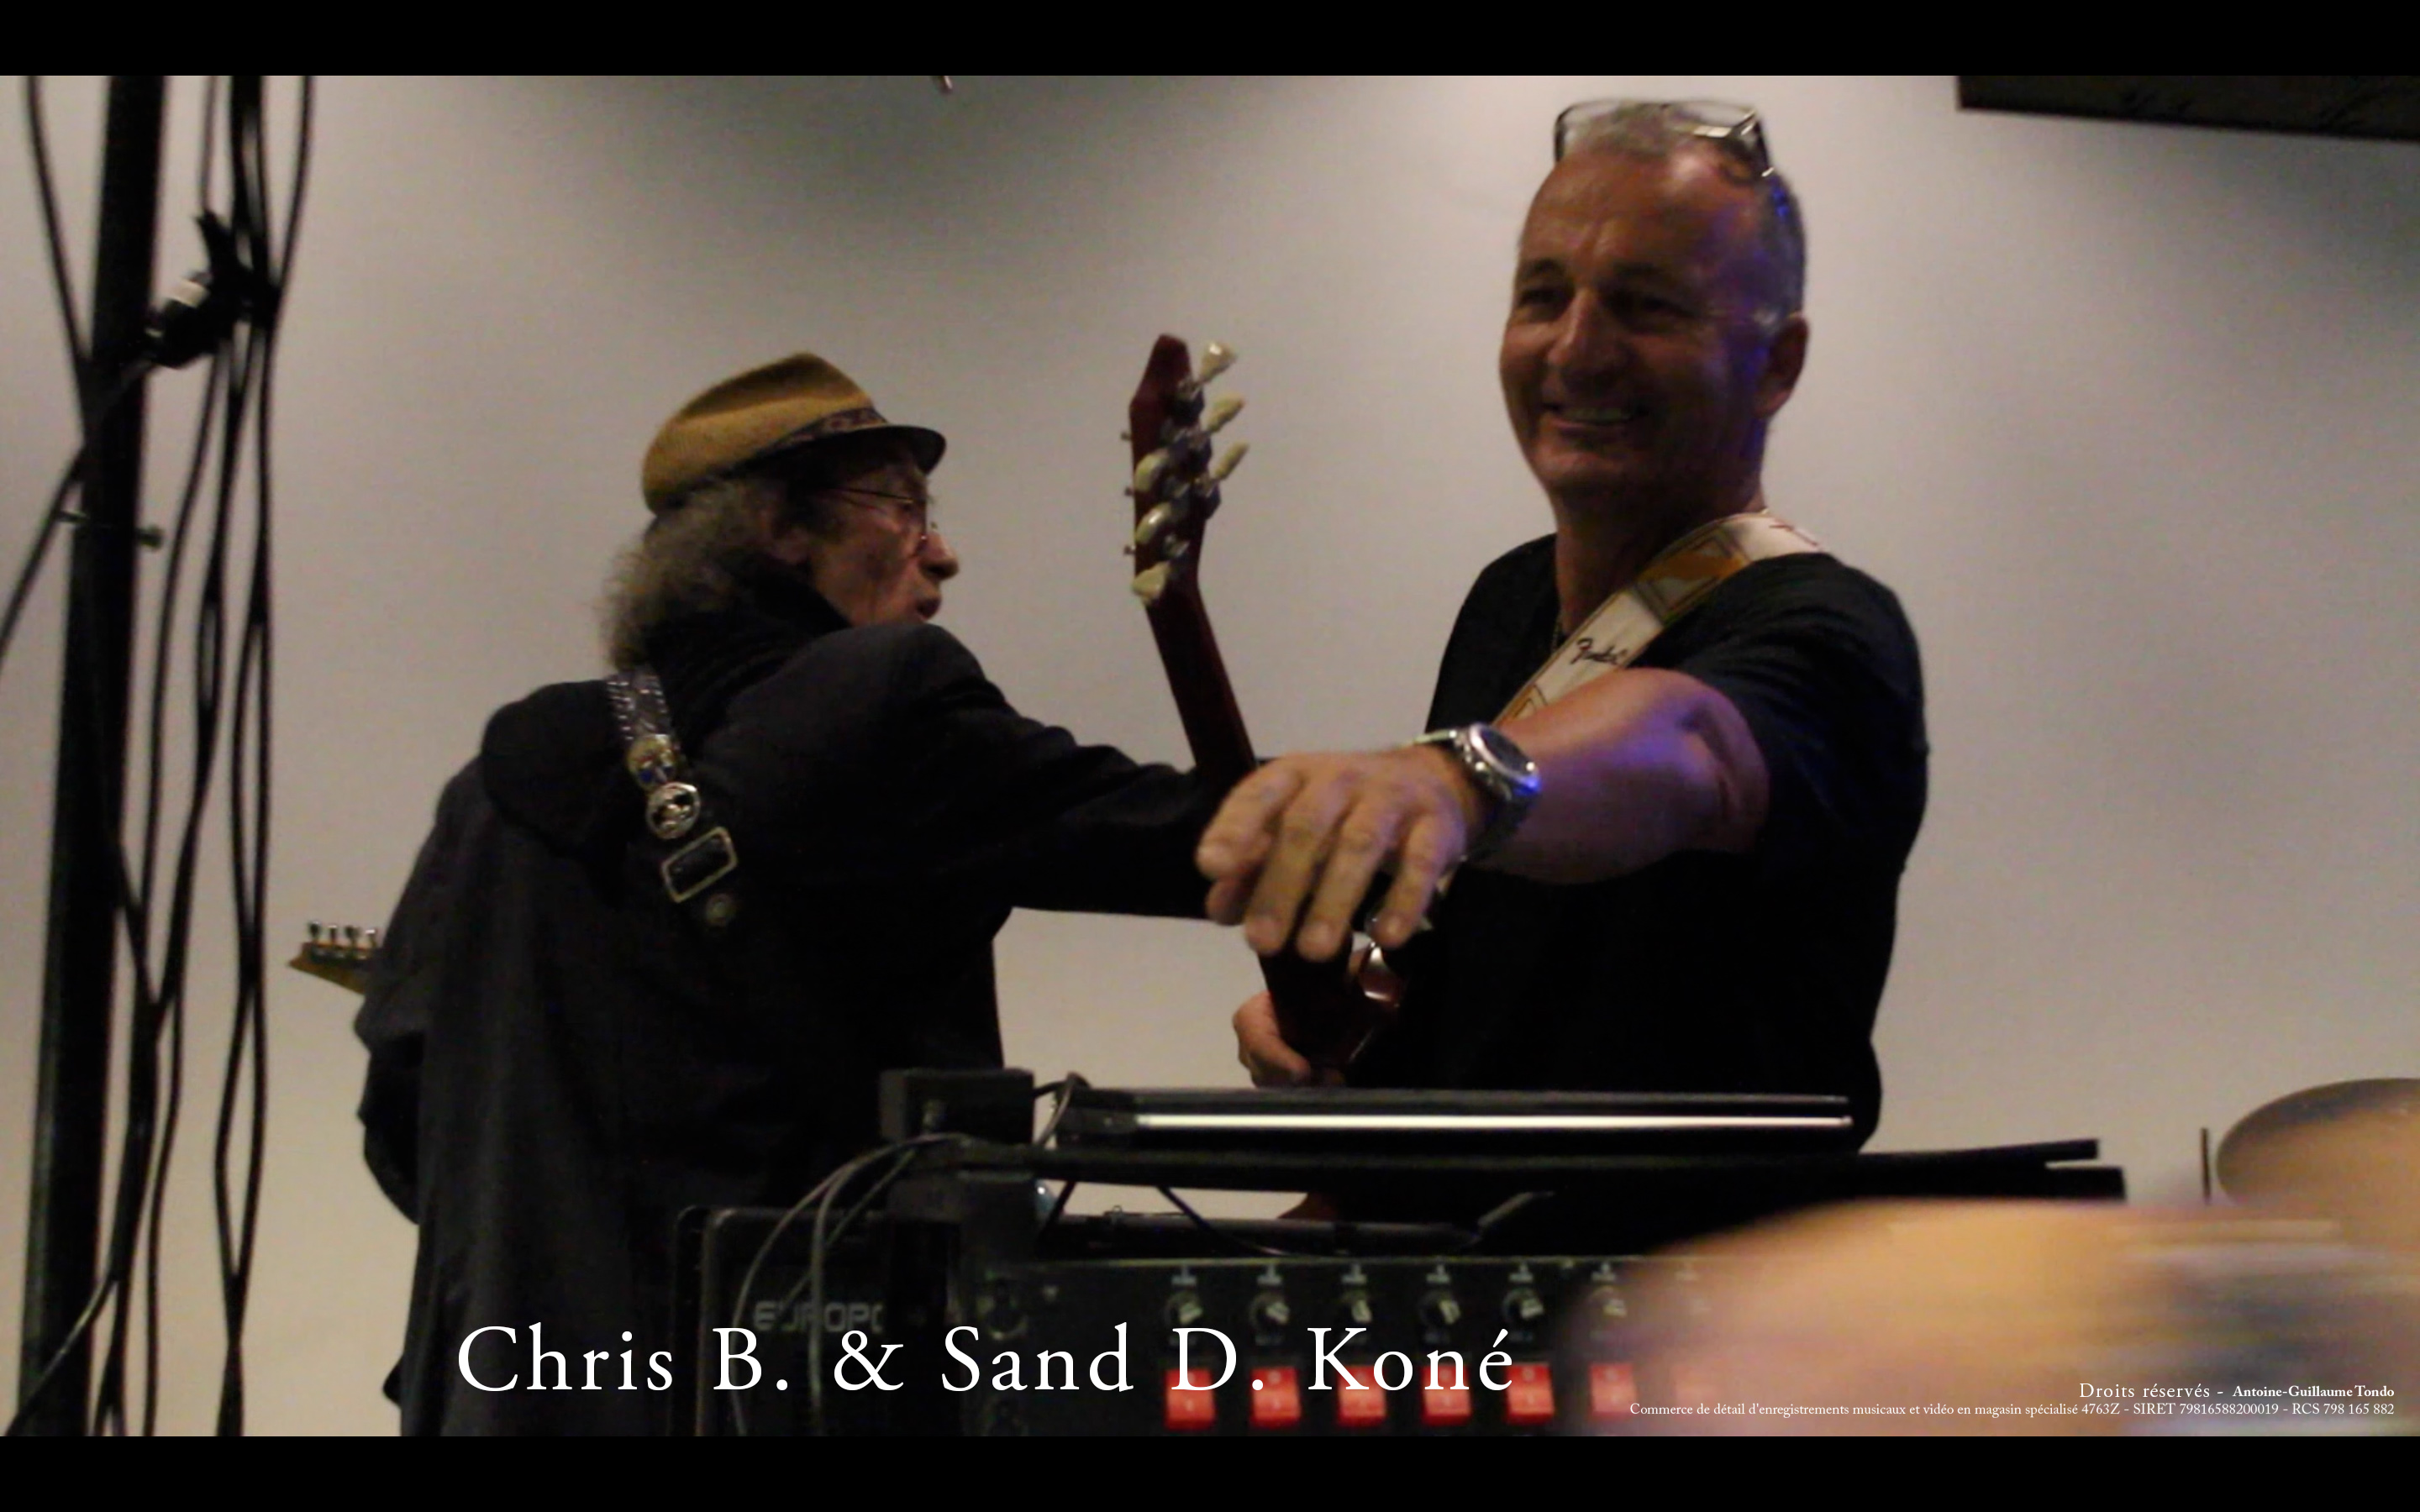 Chris B and Sand D. Koné